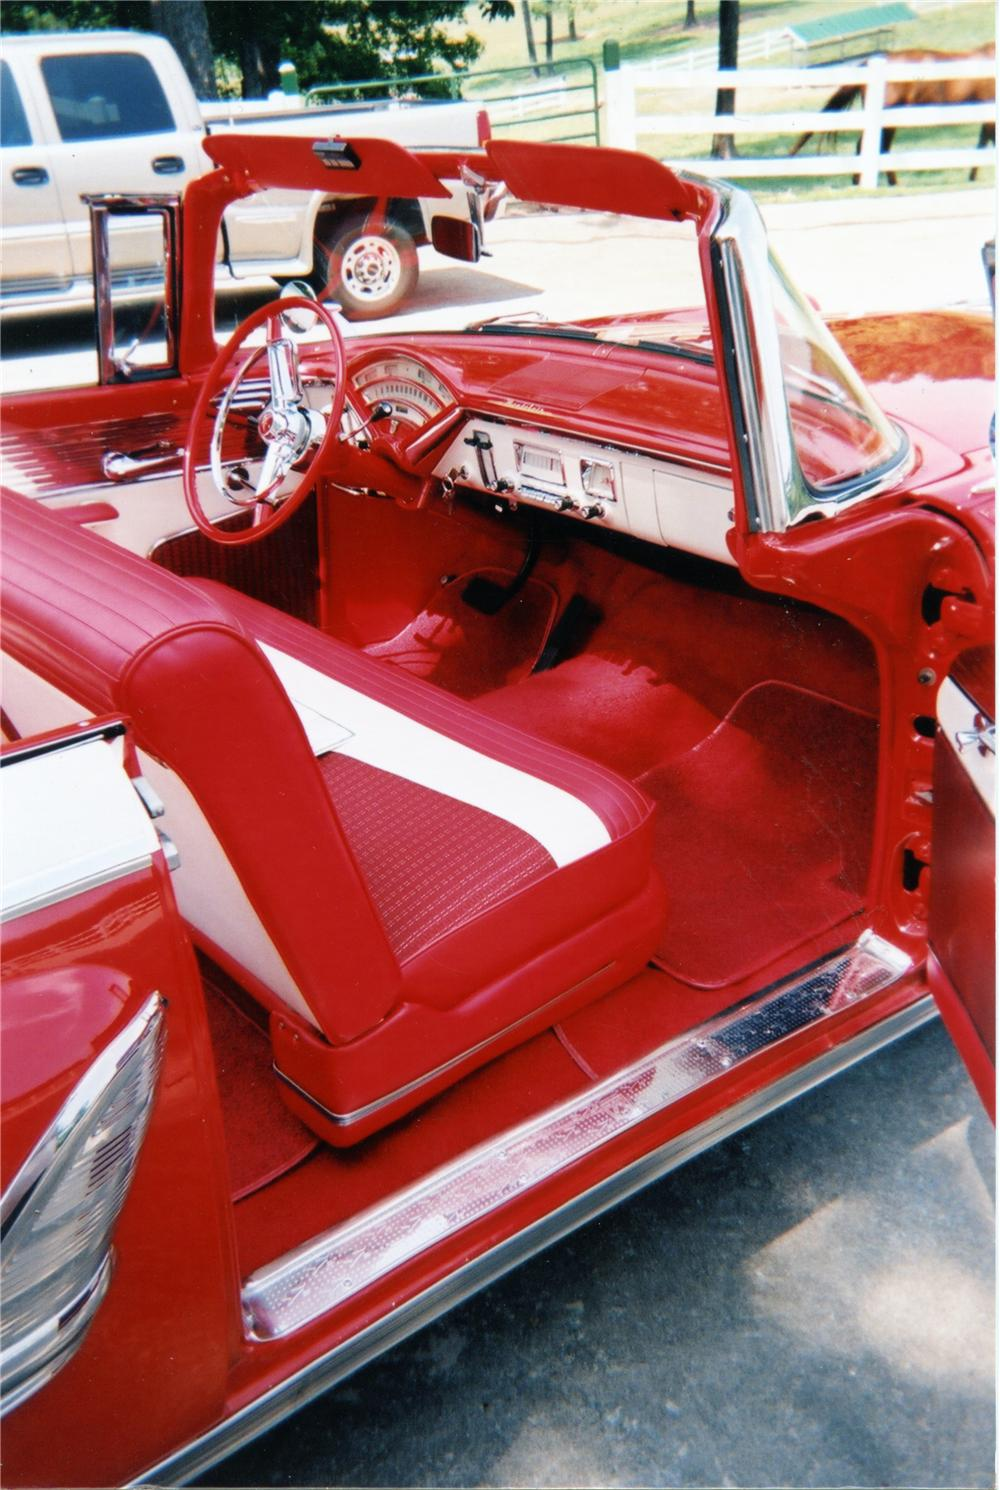 1955 MERCURY MONTCLAIR CONVERTIBLE - Interior - 75016